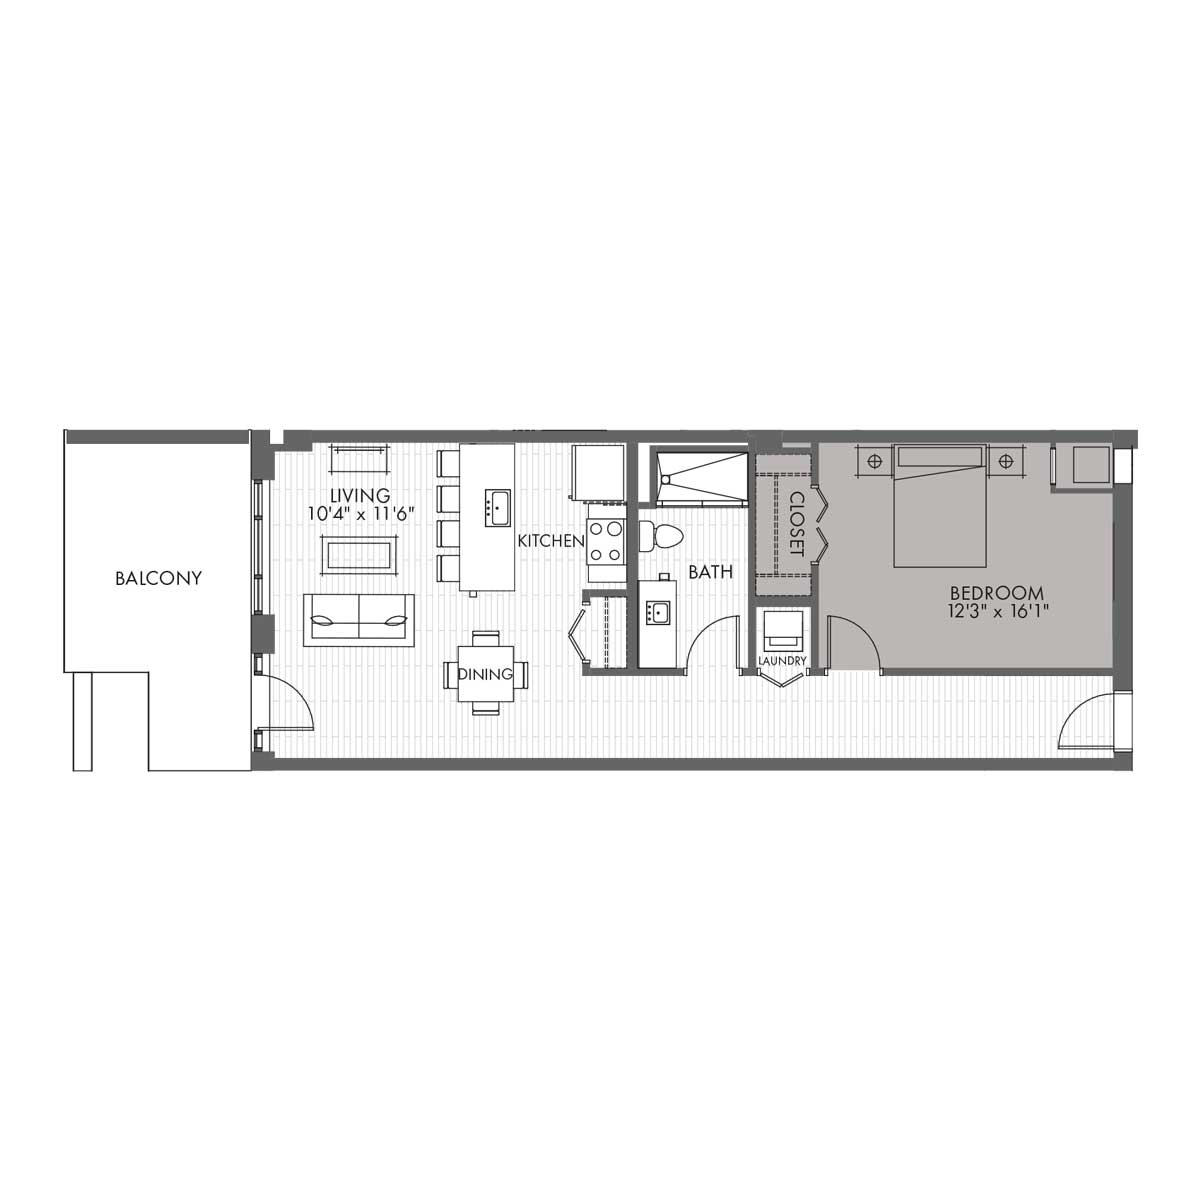 Townhome One Bedroom - Style 1A